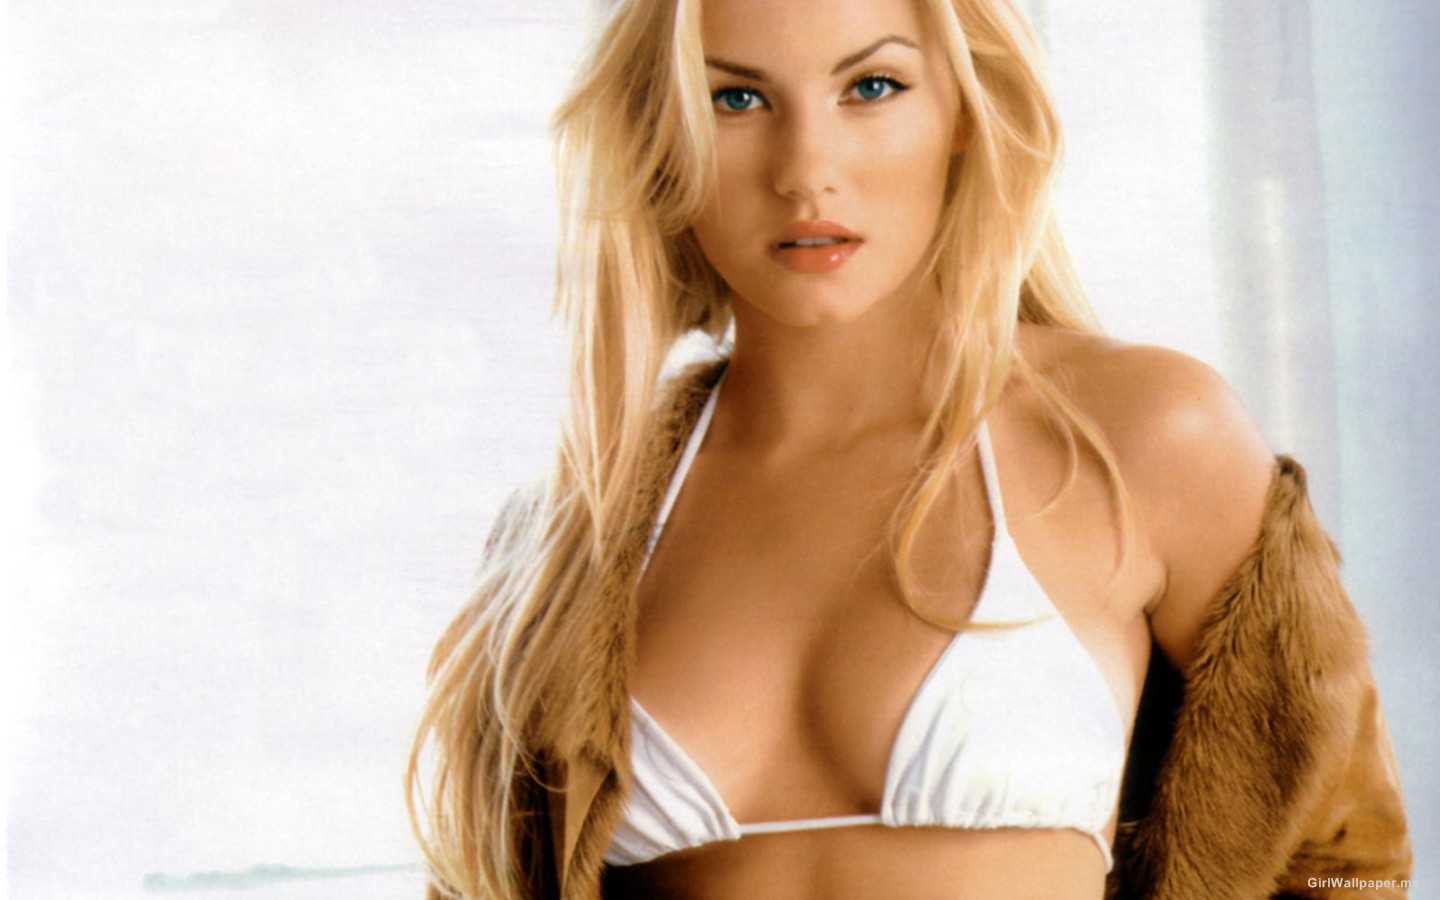 Elisha Cuthbert White Bikini Top Wallpaper 1440×900 Photo 28865 Wallpaper